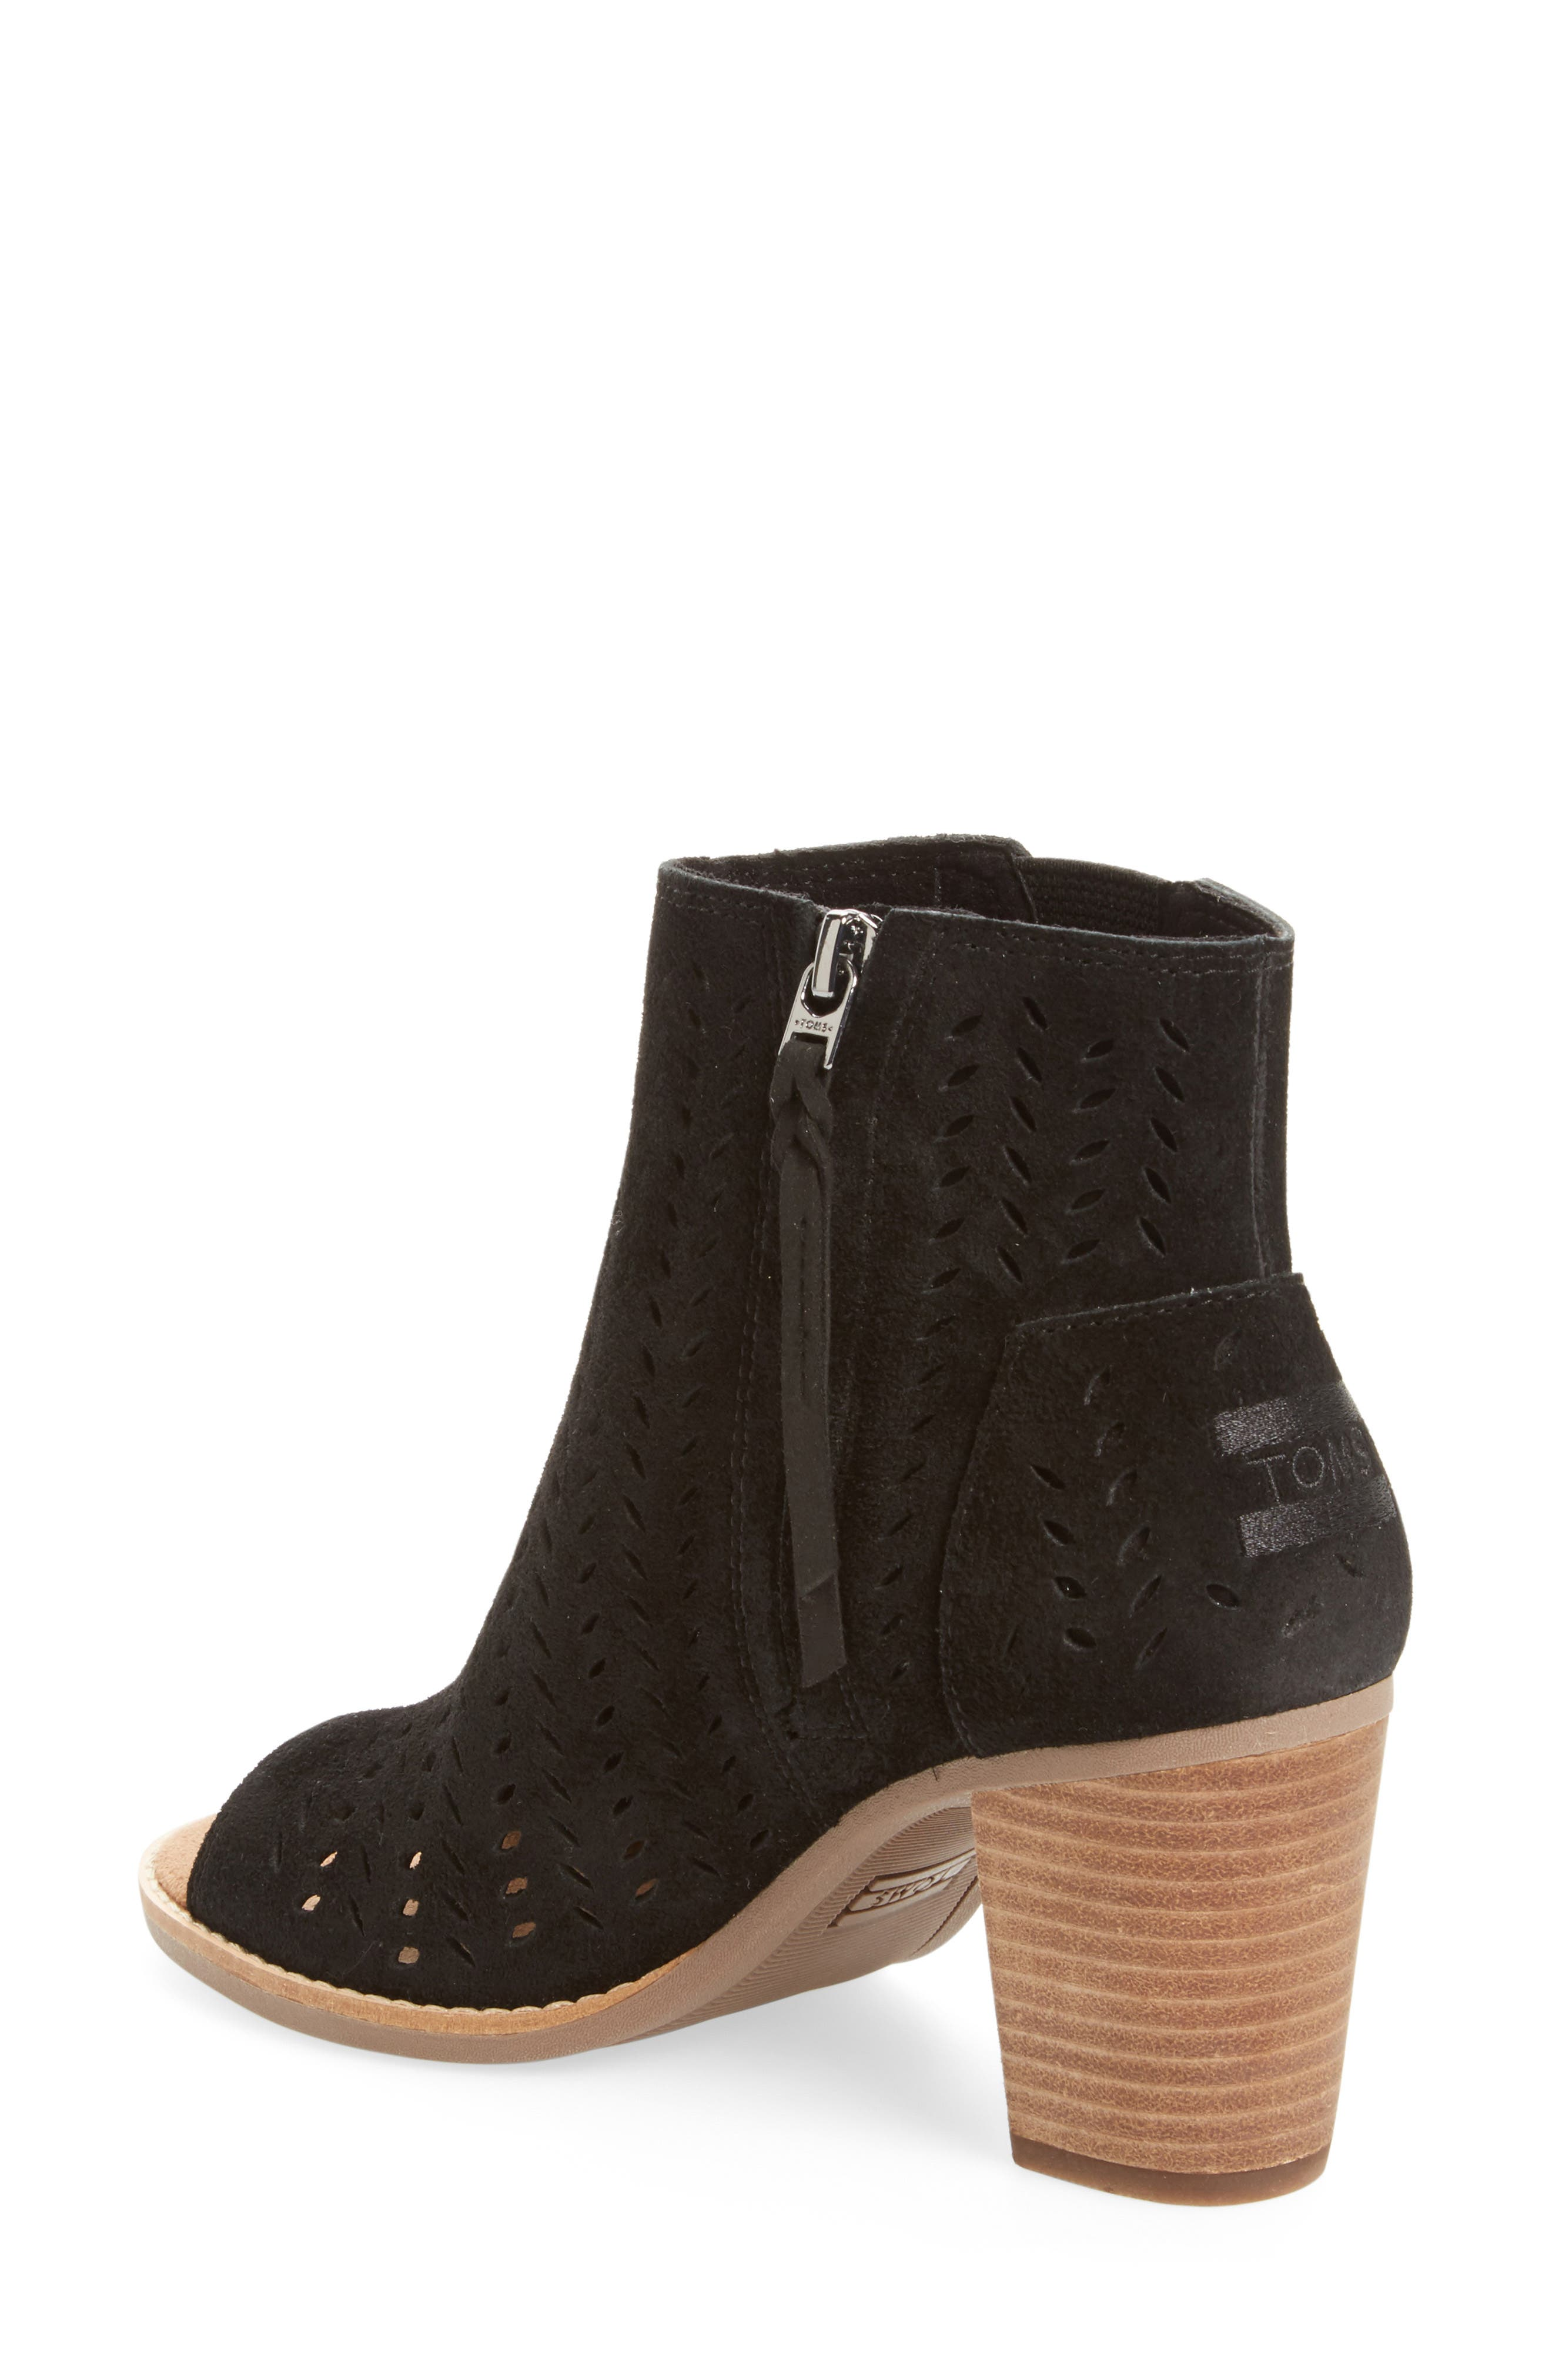 Majorca Perforated Suede Bootie,                             Alternate thumbnail 2, color,                             001